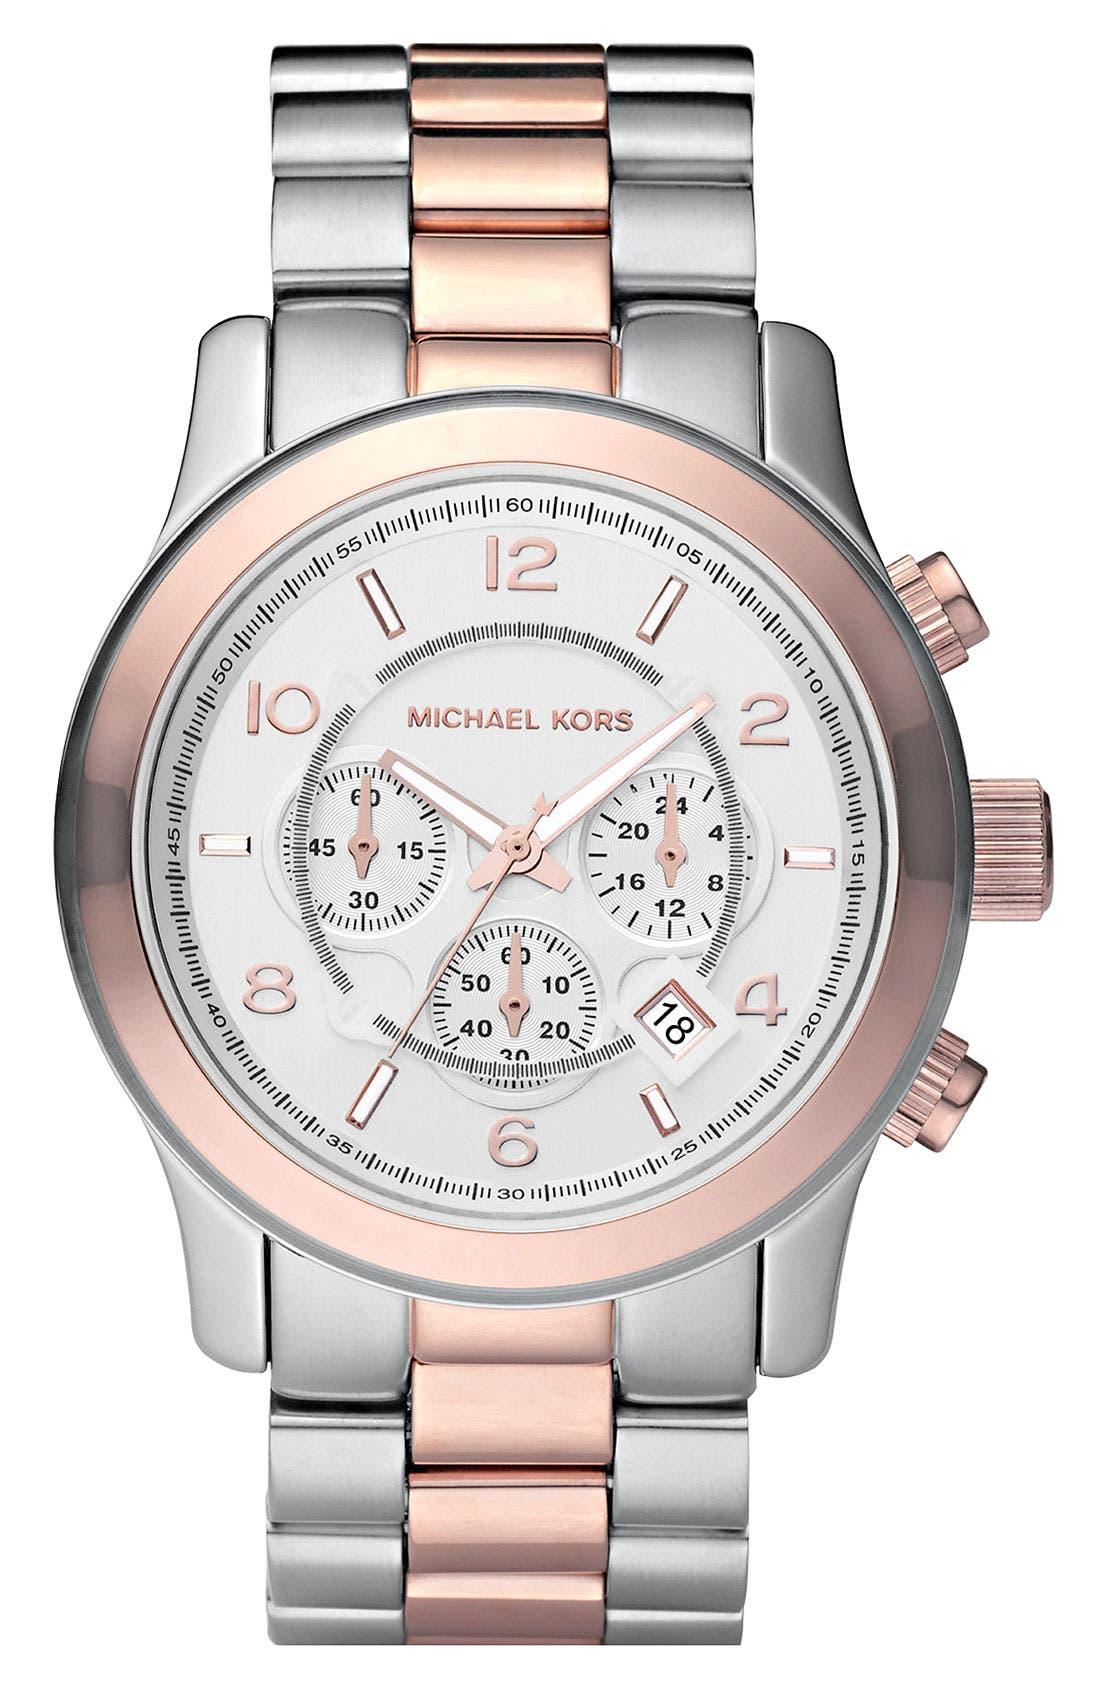 Main Image - Michael Kors 'Large Runway' Two Tone Chronograph Watch